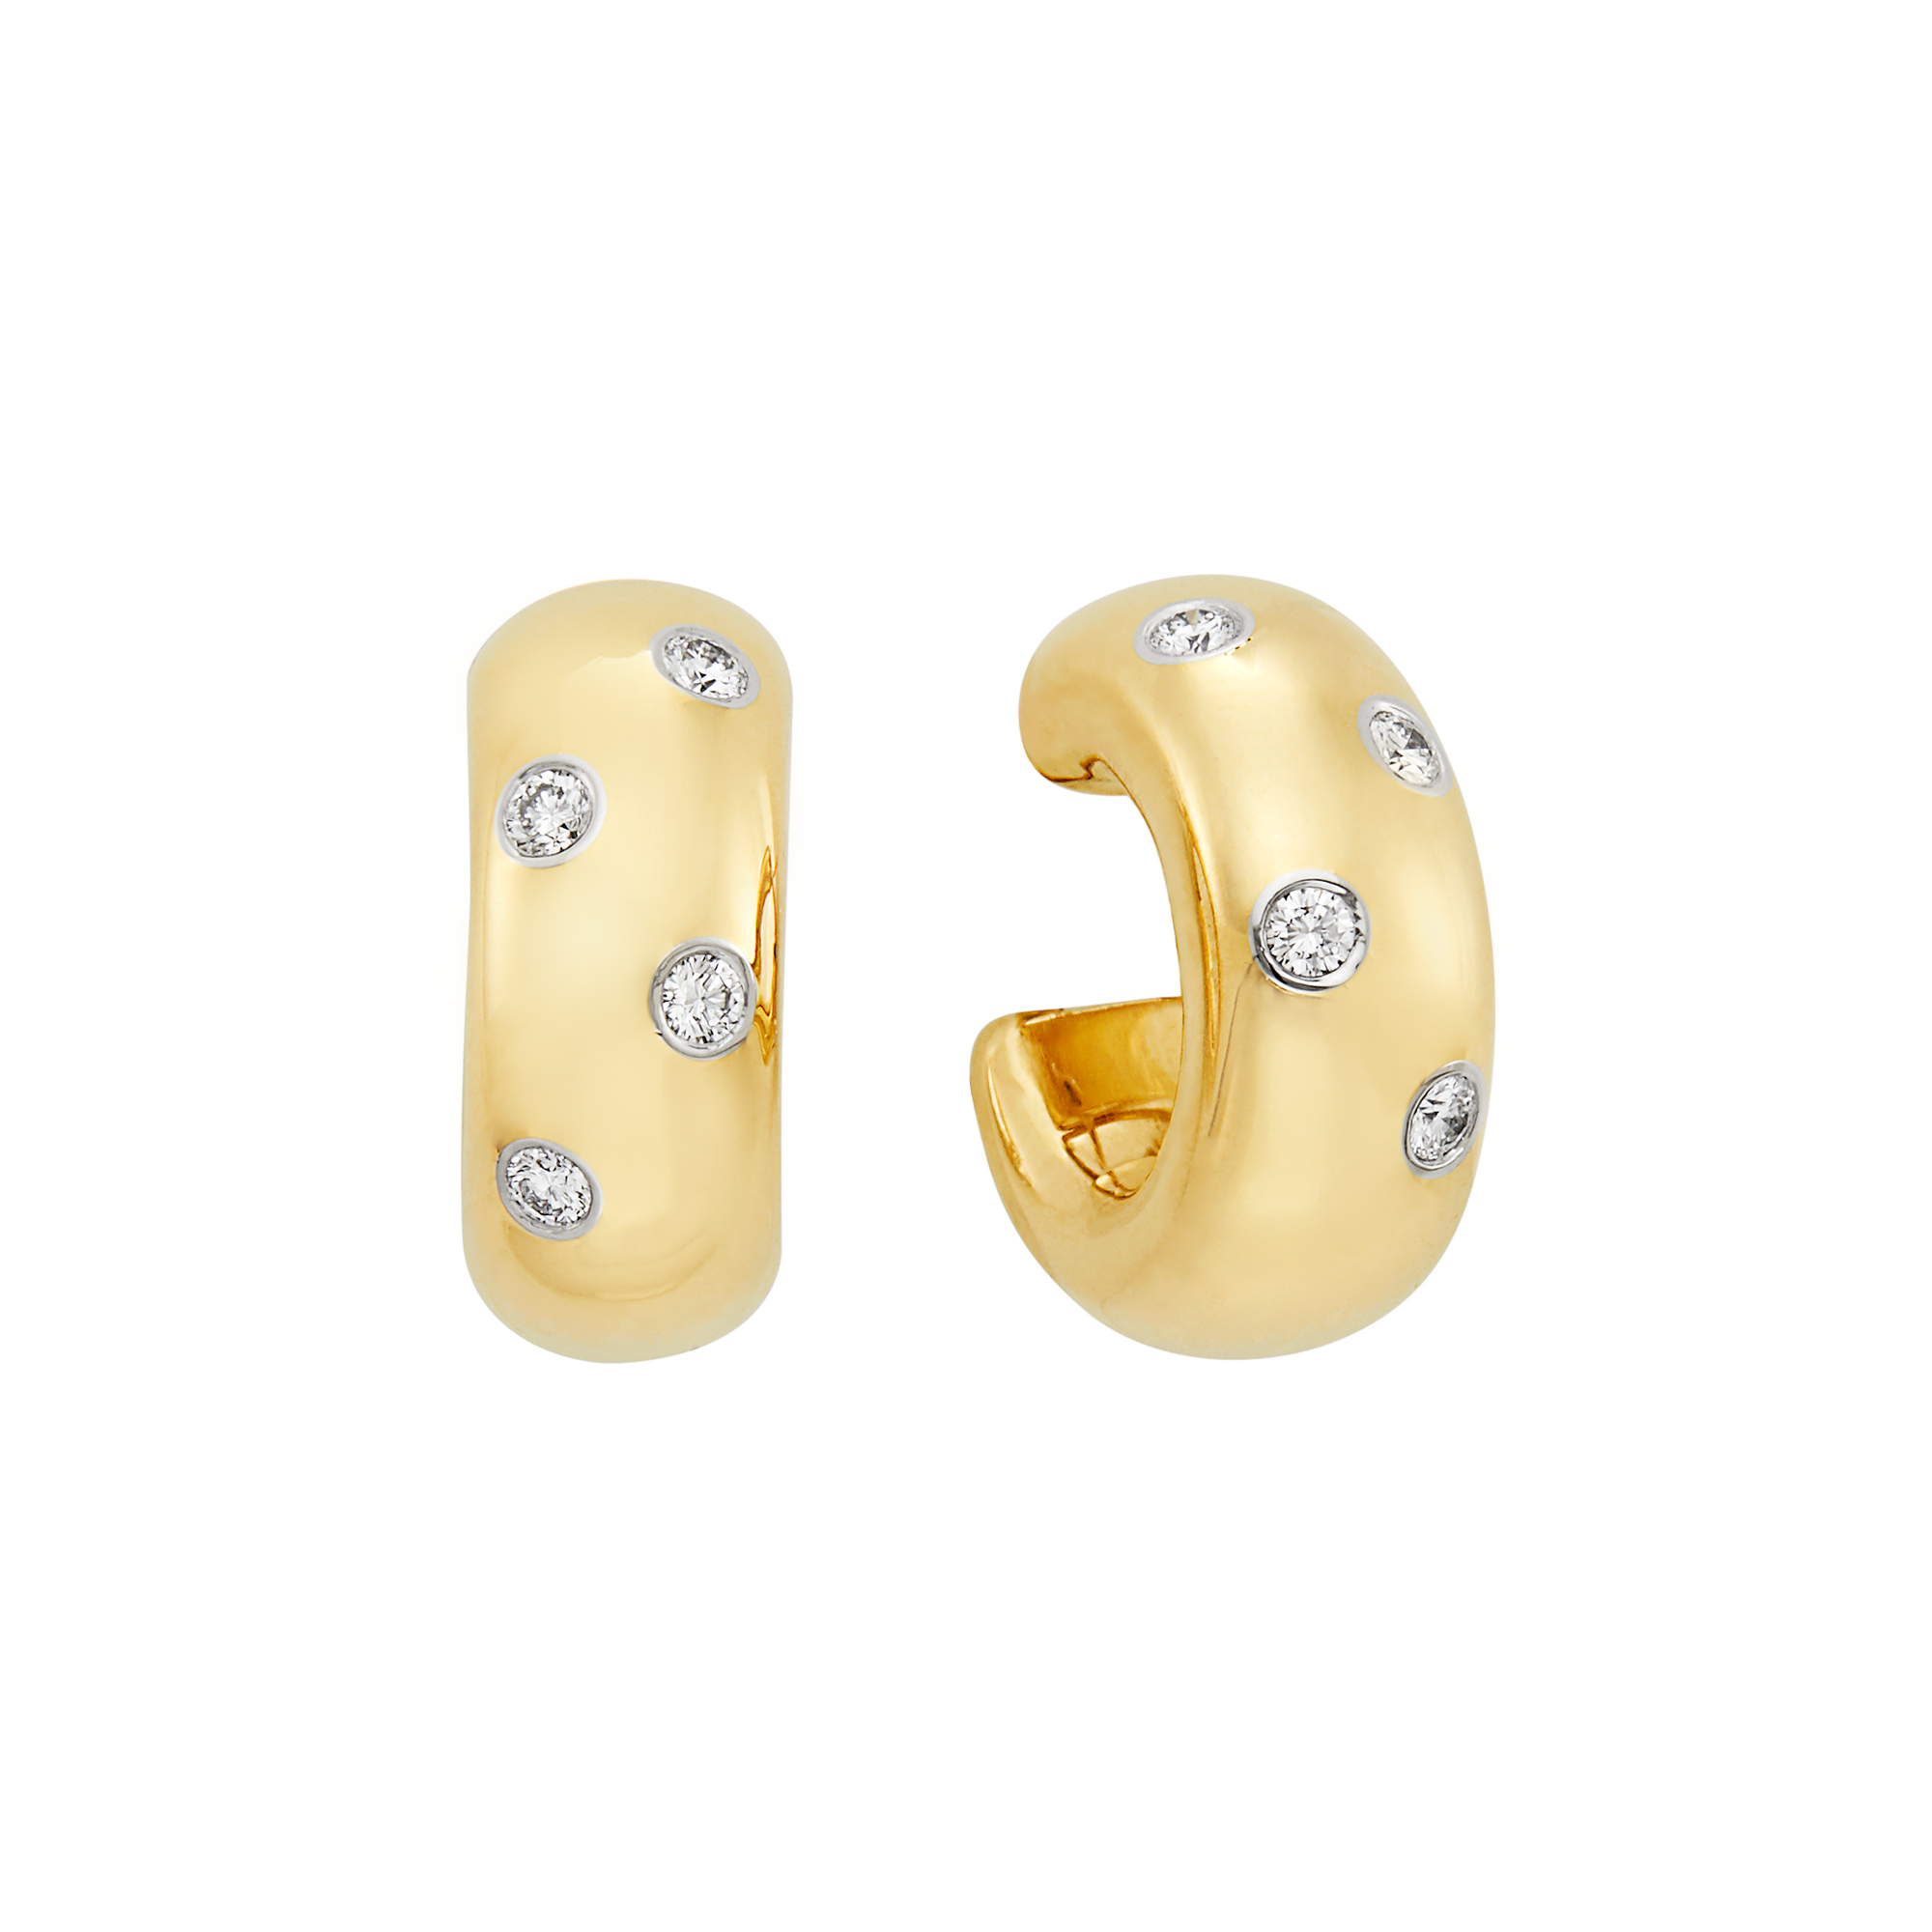 Lot image - Pair of Gold, Platinum and Diamond Hoop Earrings, Tiffany & Co.